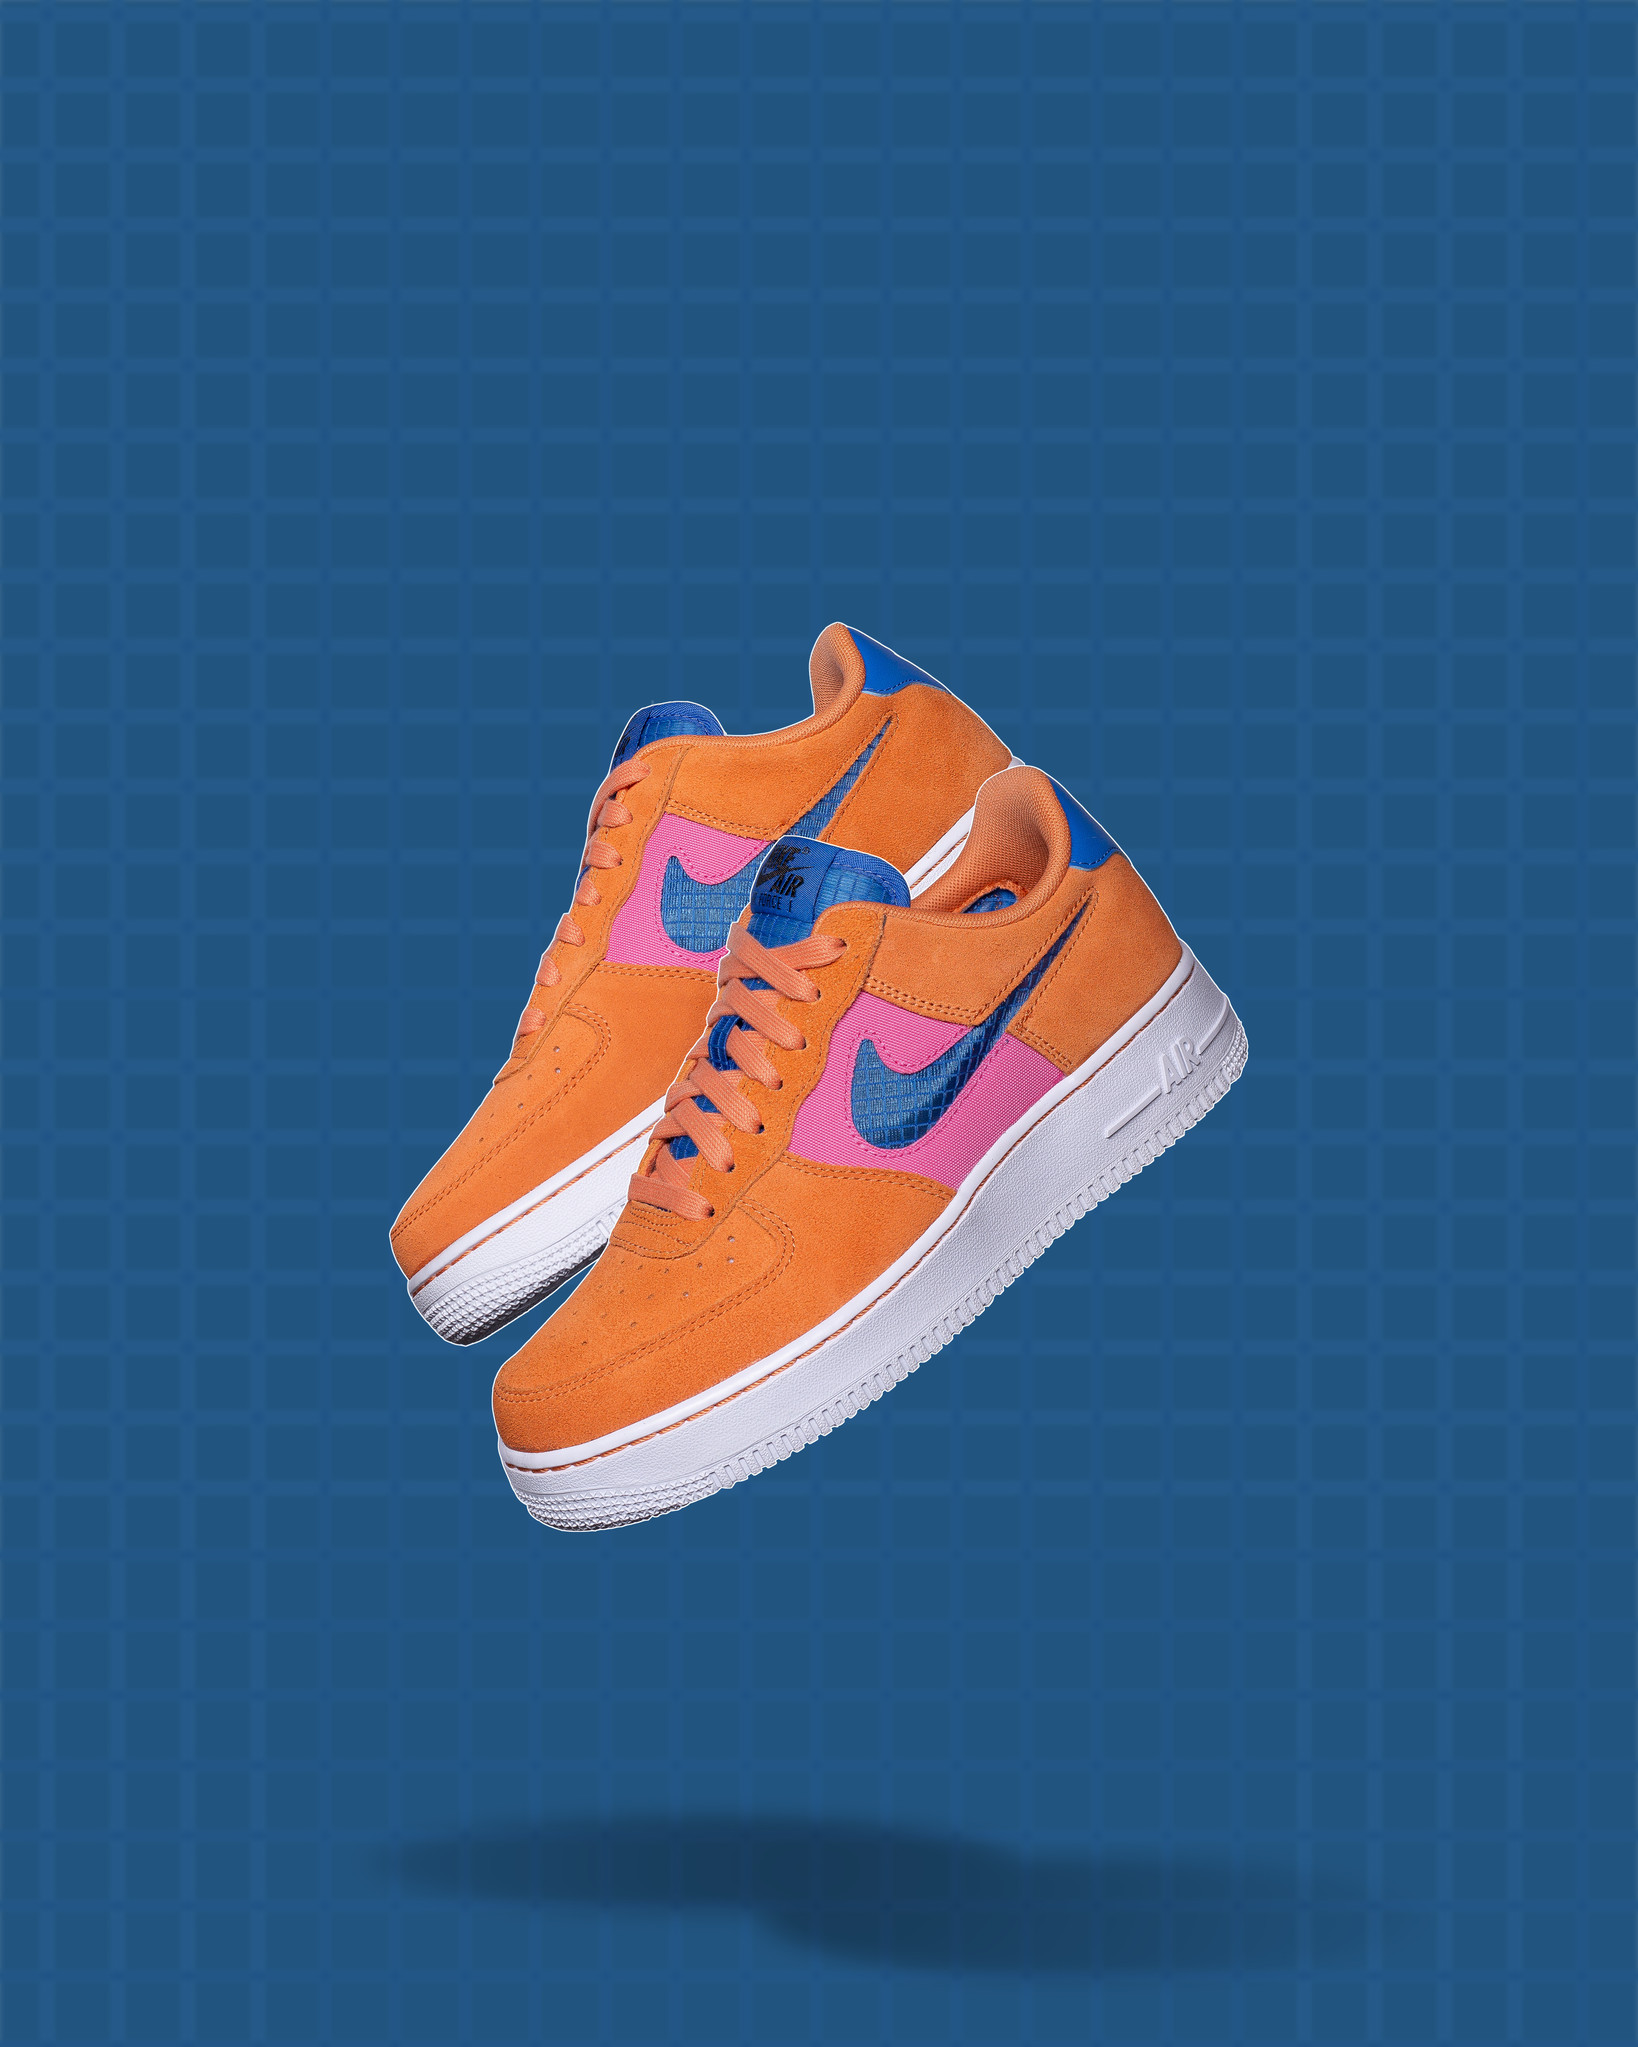 Nike Air Force 1 '07 LV8 Orange/Pacific Blue